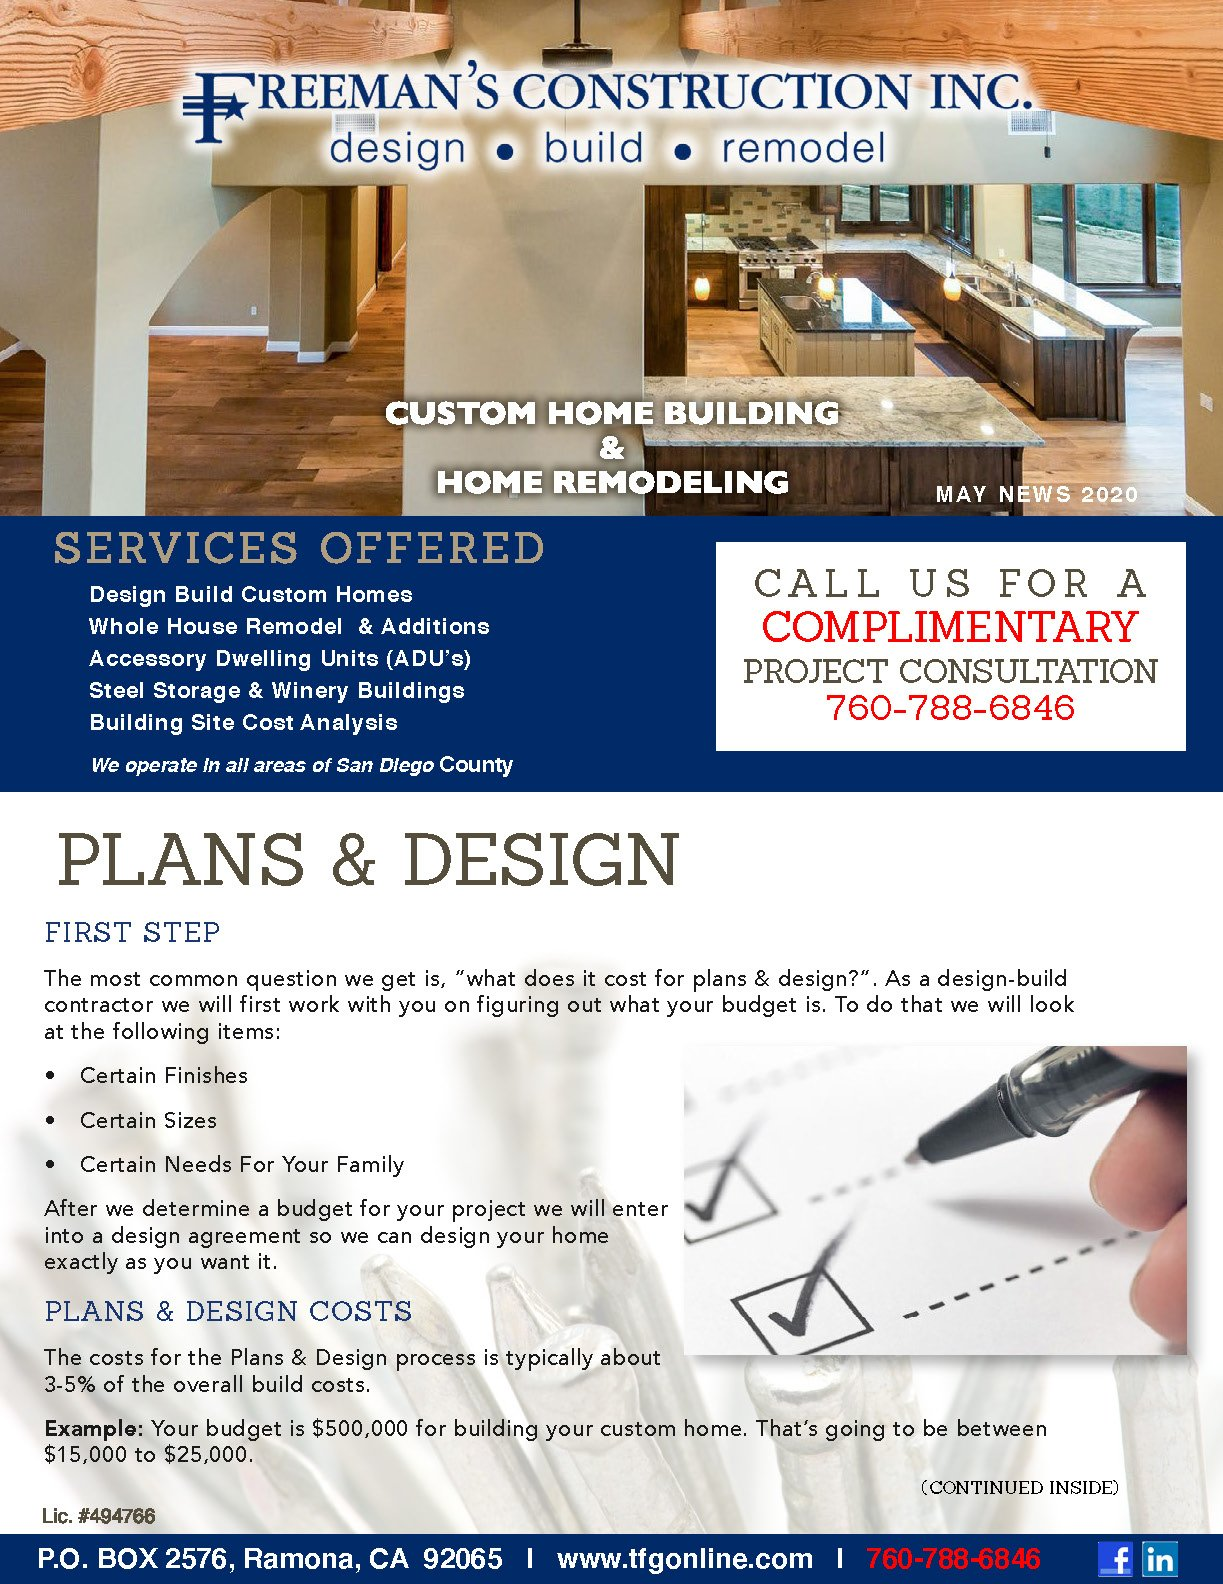 may-newsletter-in-san-diego-county-by-freemans-construction-inc